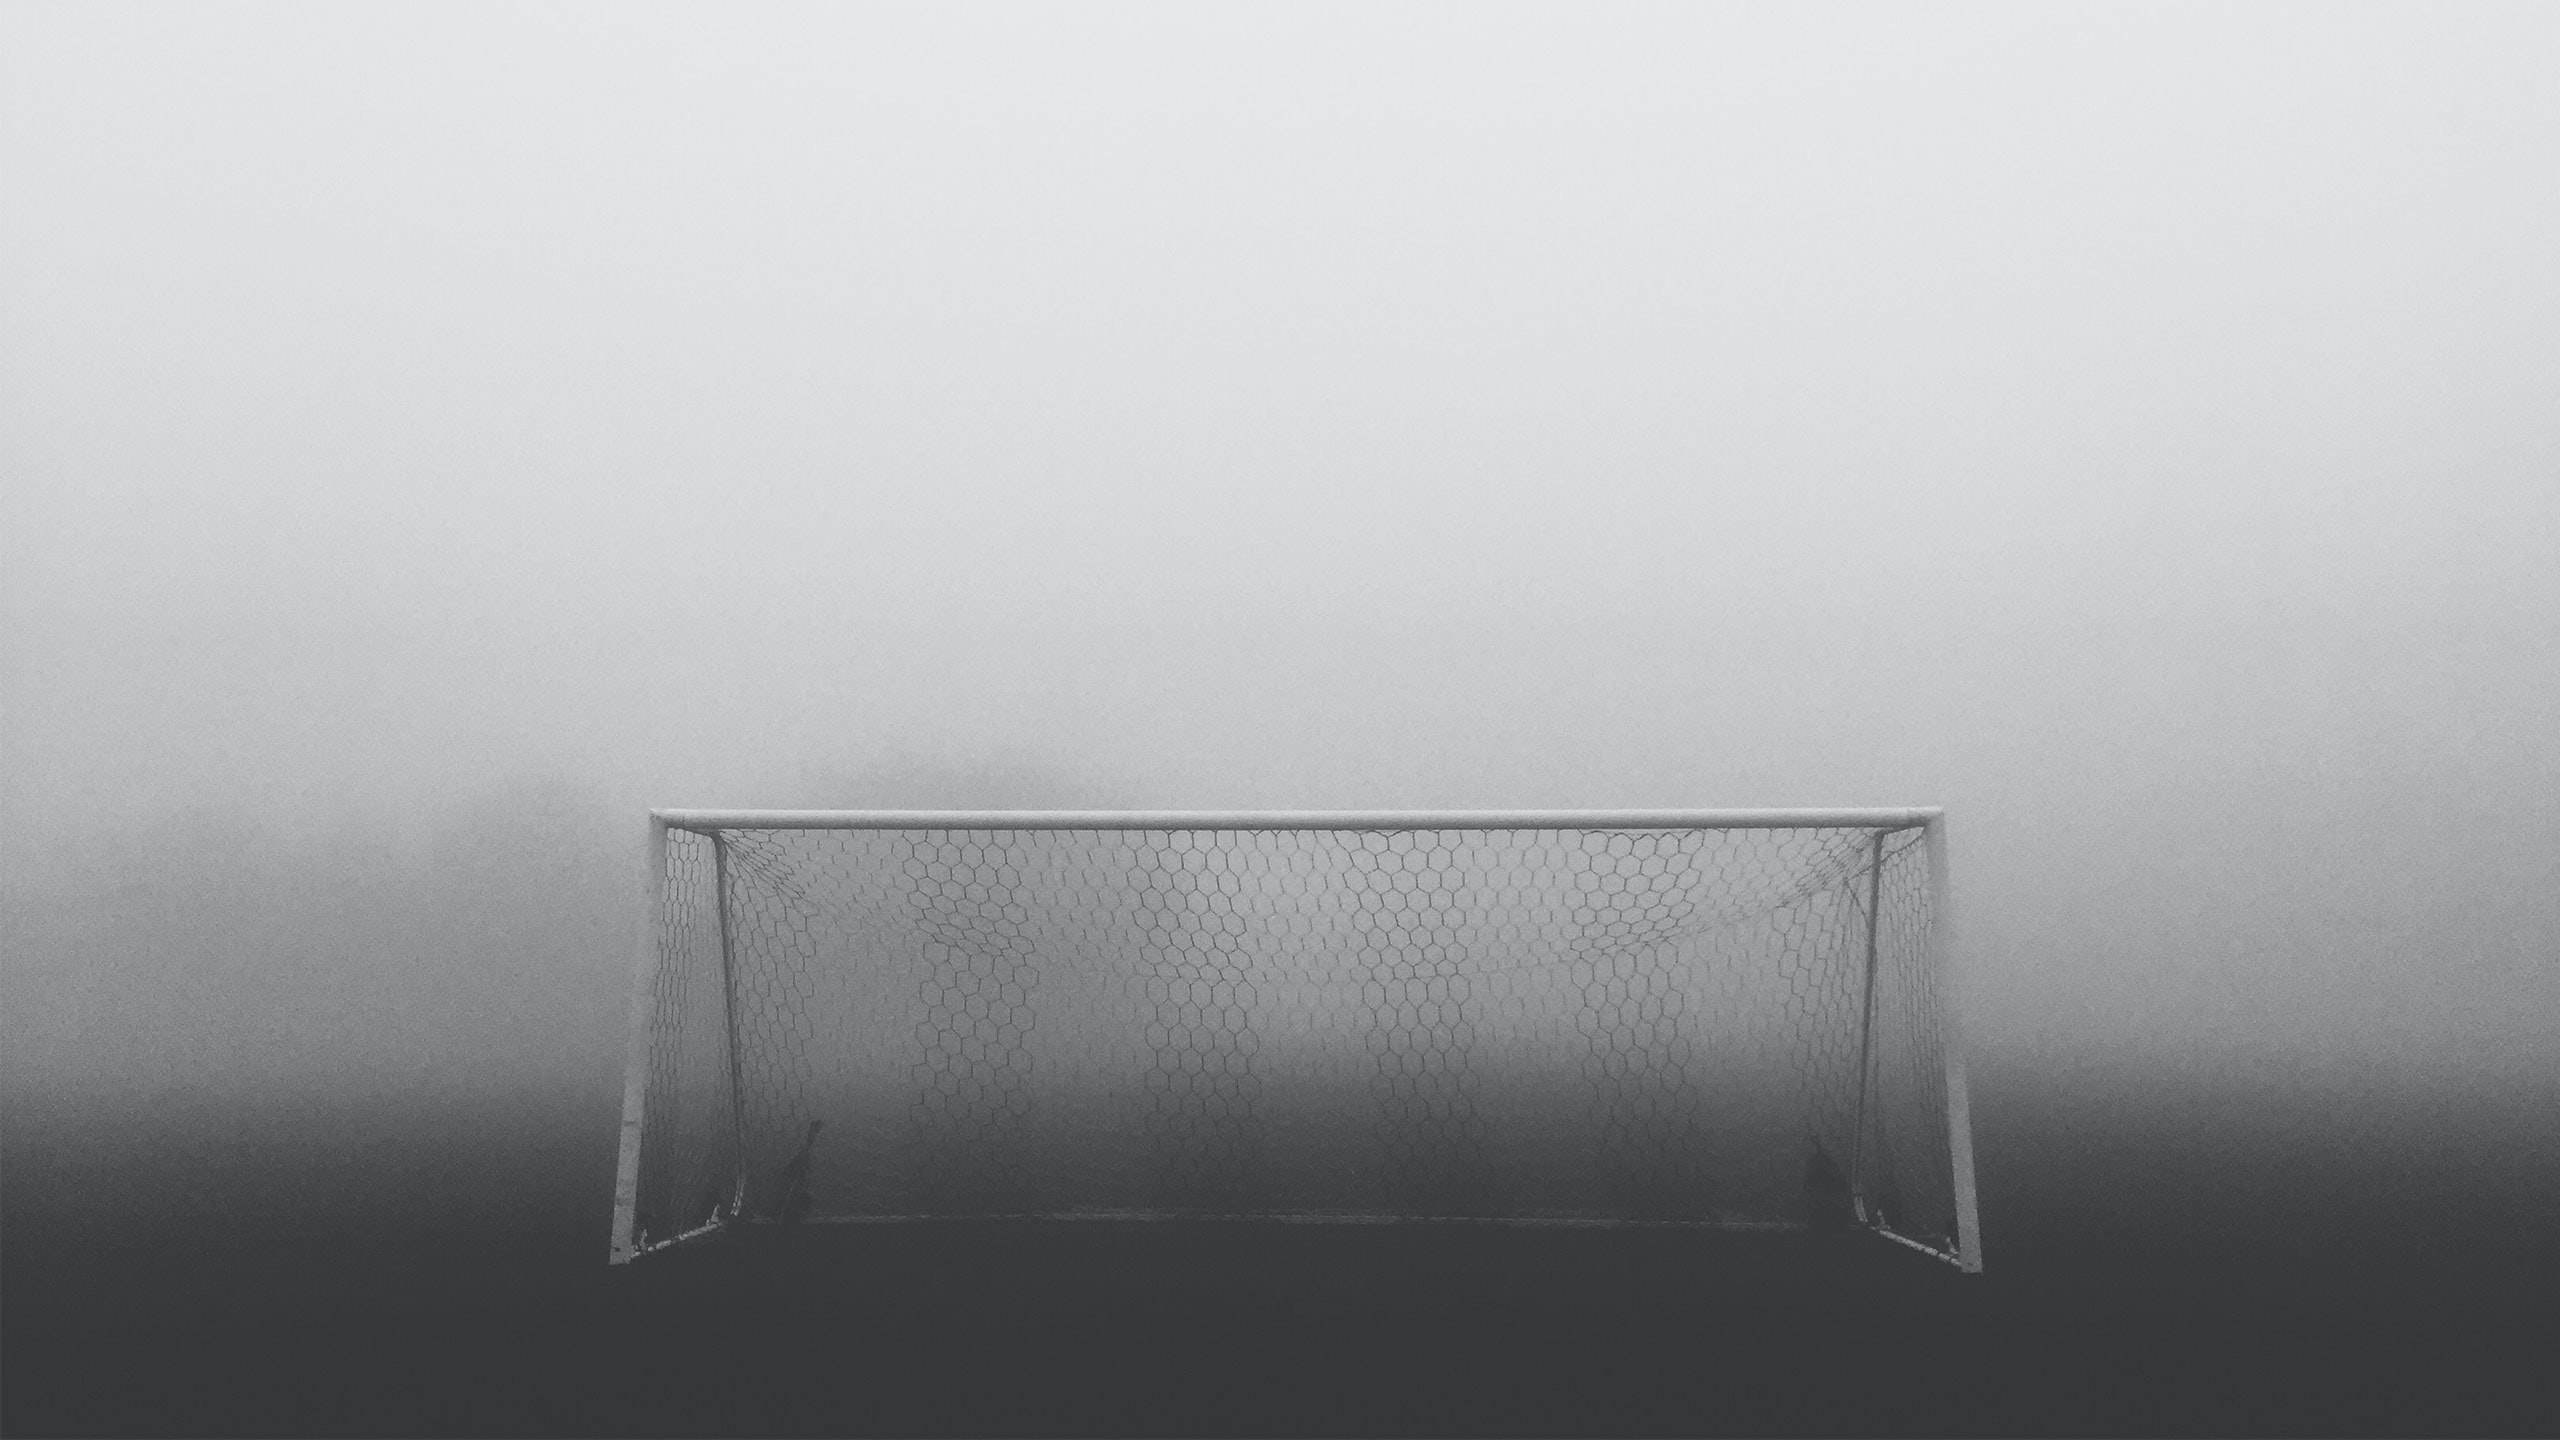 Soccer goal construction with the net in the fog